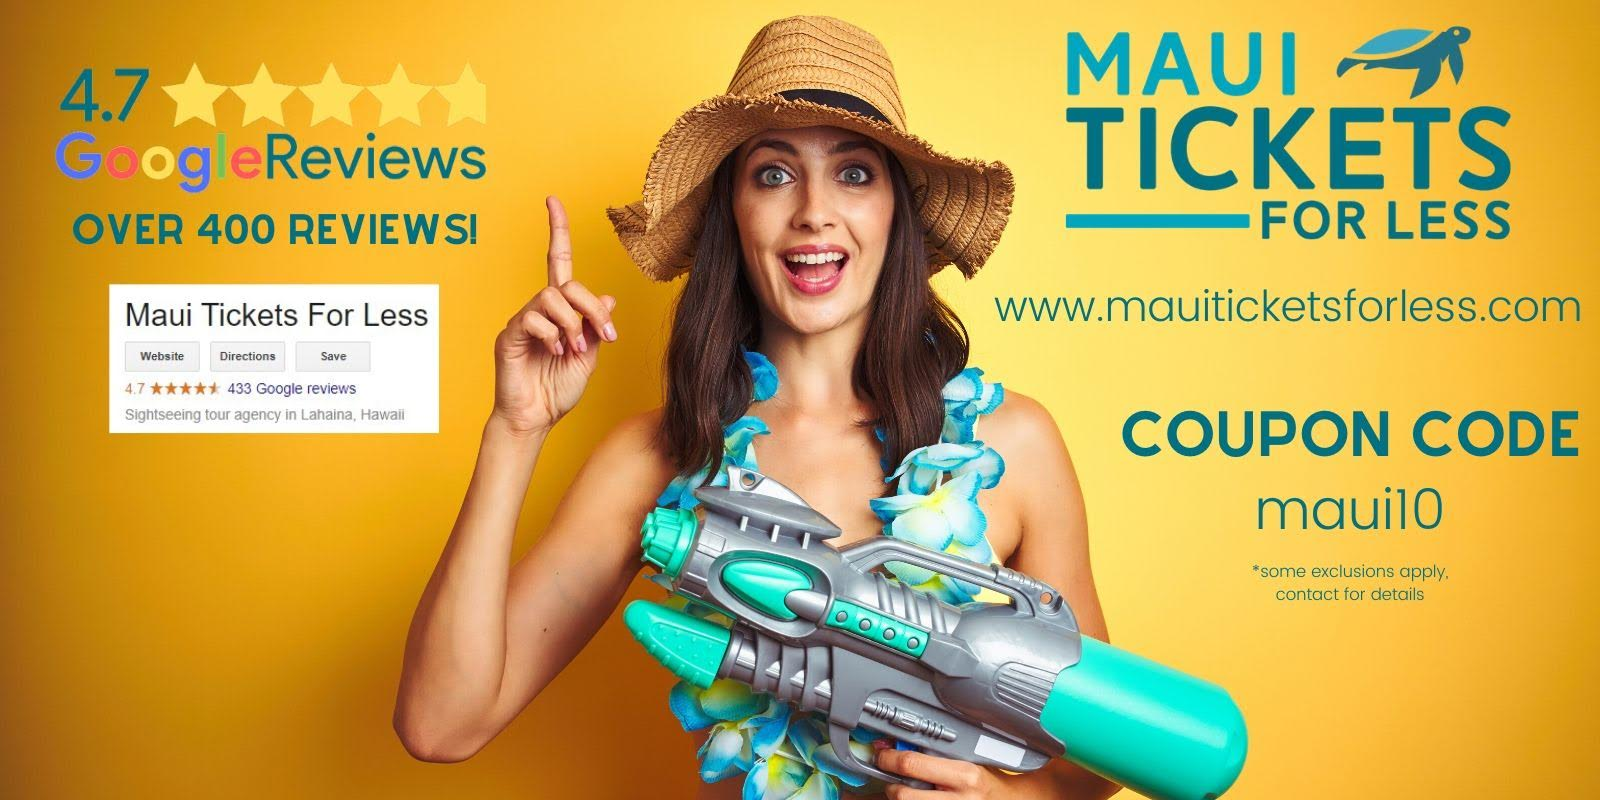 maui tickets for less